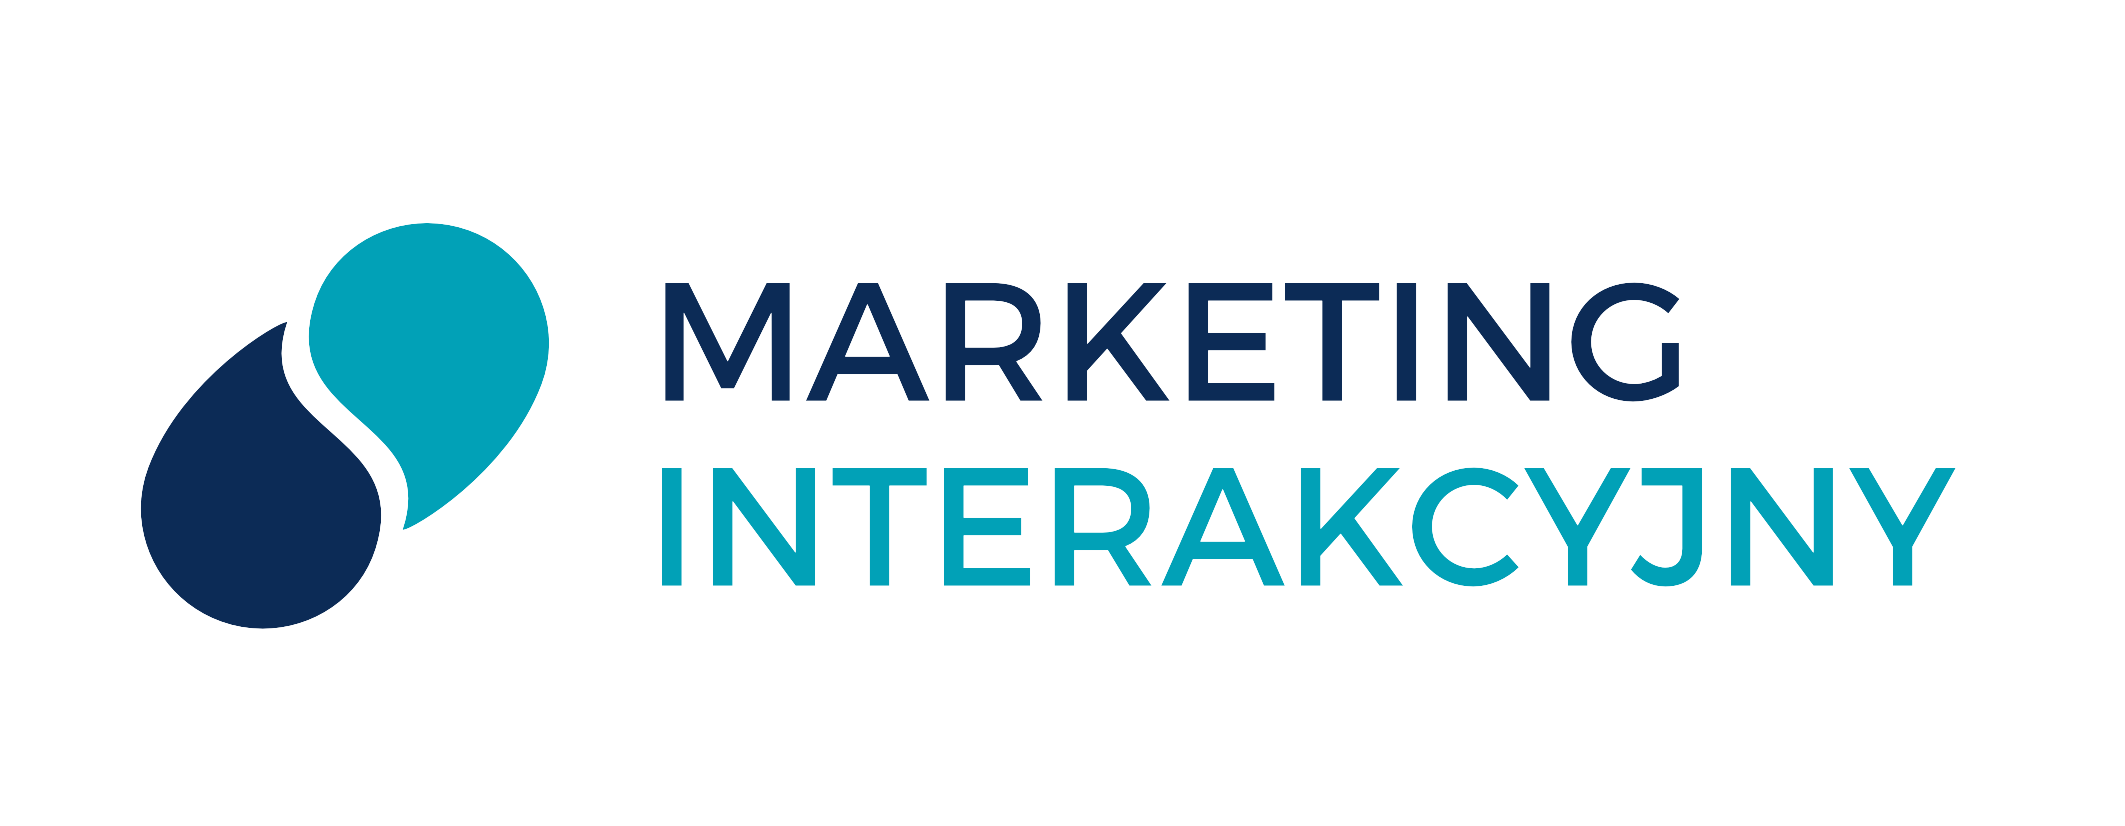 marketing interakcyjny logotyp